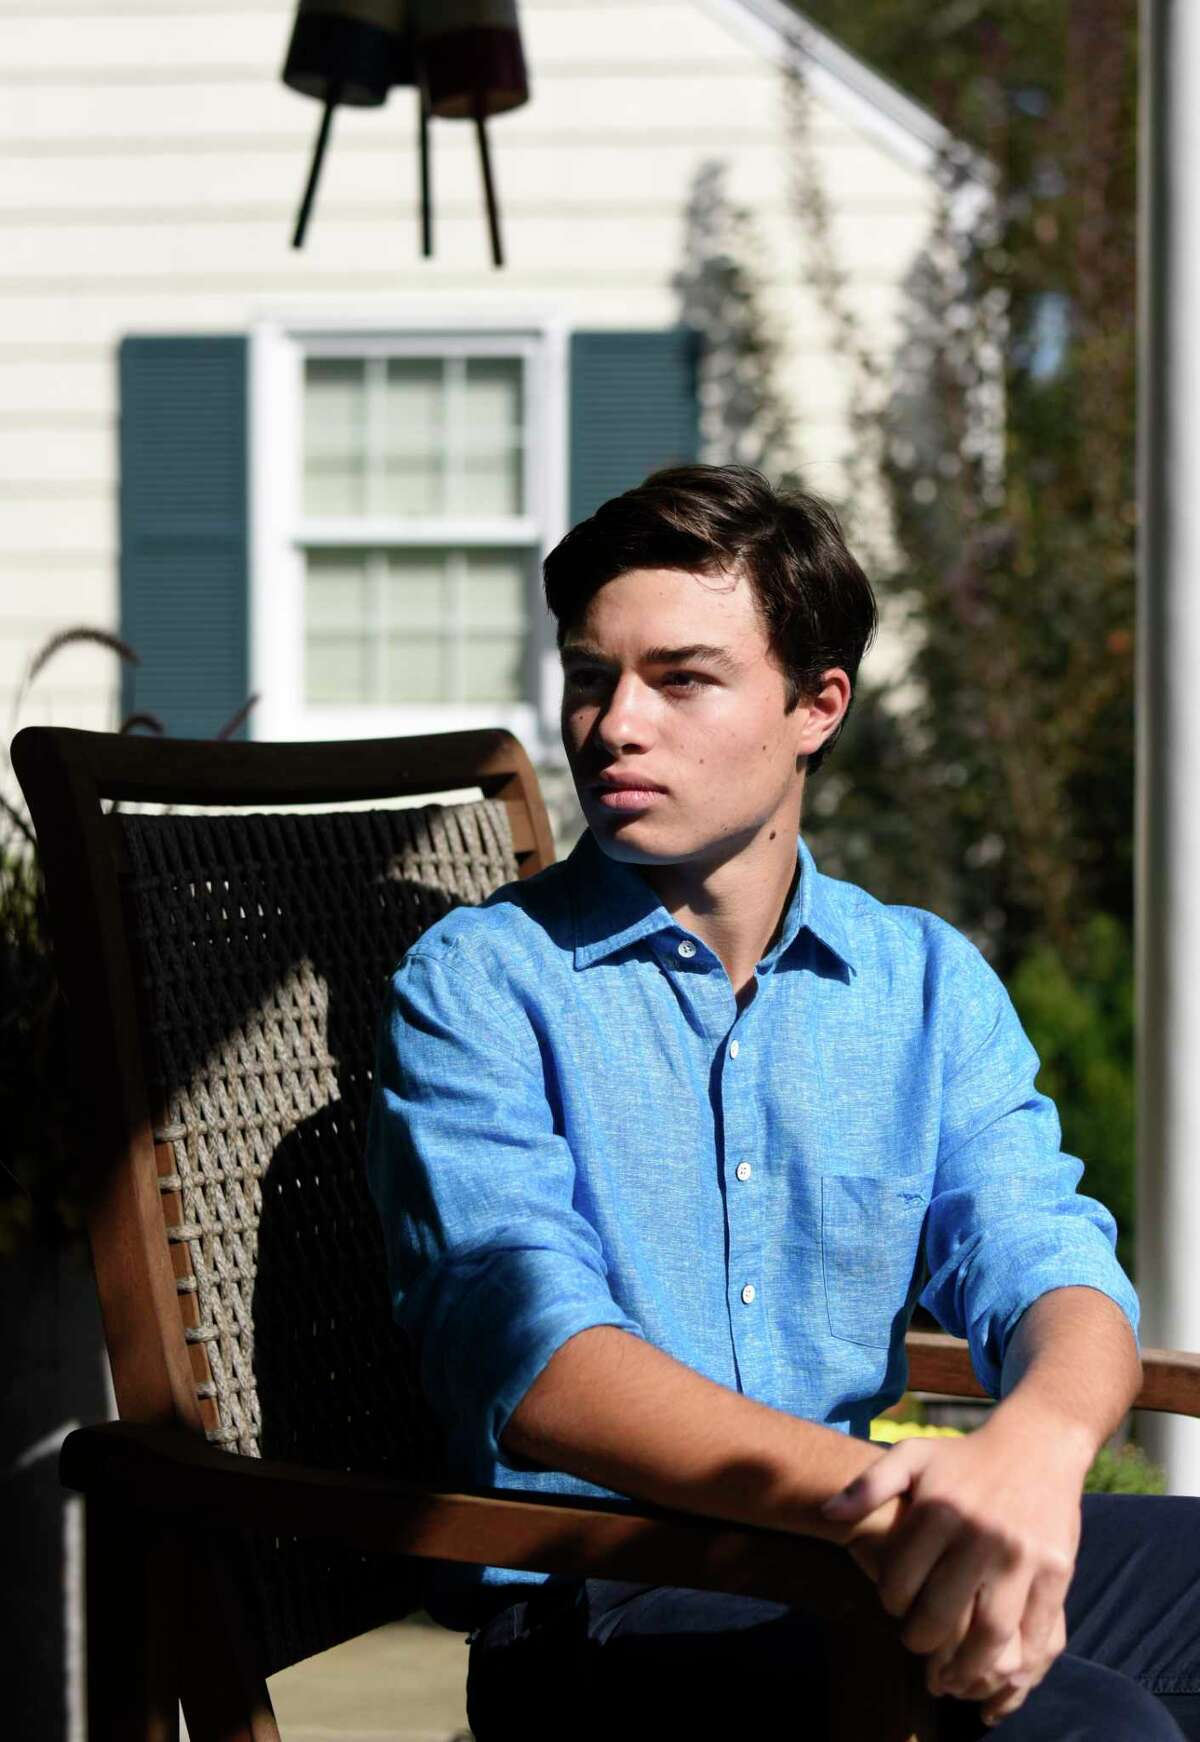 Greens Farms Academy sophomore Charles Kolin, 16, poses at his home in Old Greenwich, Conn. Sunday, Oct. 13, 2019. Kolin went from being a bullying victim to an advocate for tolerance, kindness and inclusion. He went to Washington and met with dozens of Senators and Representatives to draft a resolution of kindness that is resulting in Unity Day on Oct. 23.